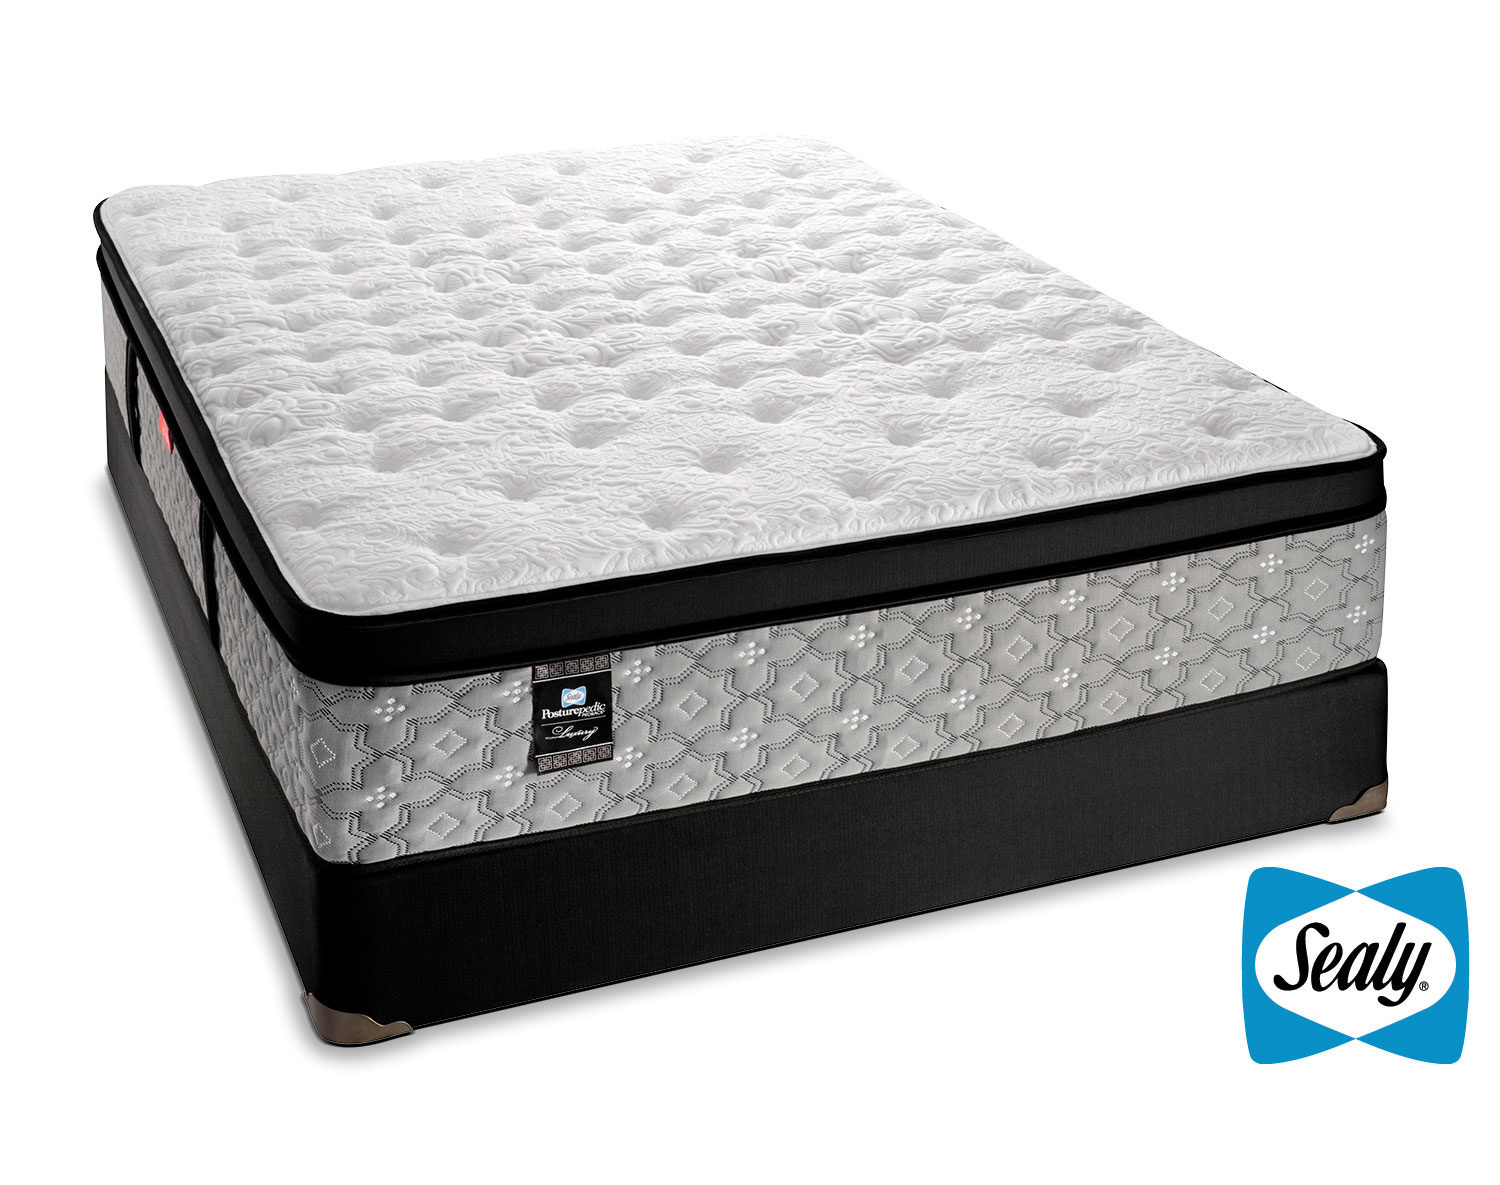 The Sealy Hemmingway Cushion Firm Mattress Collection